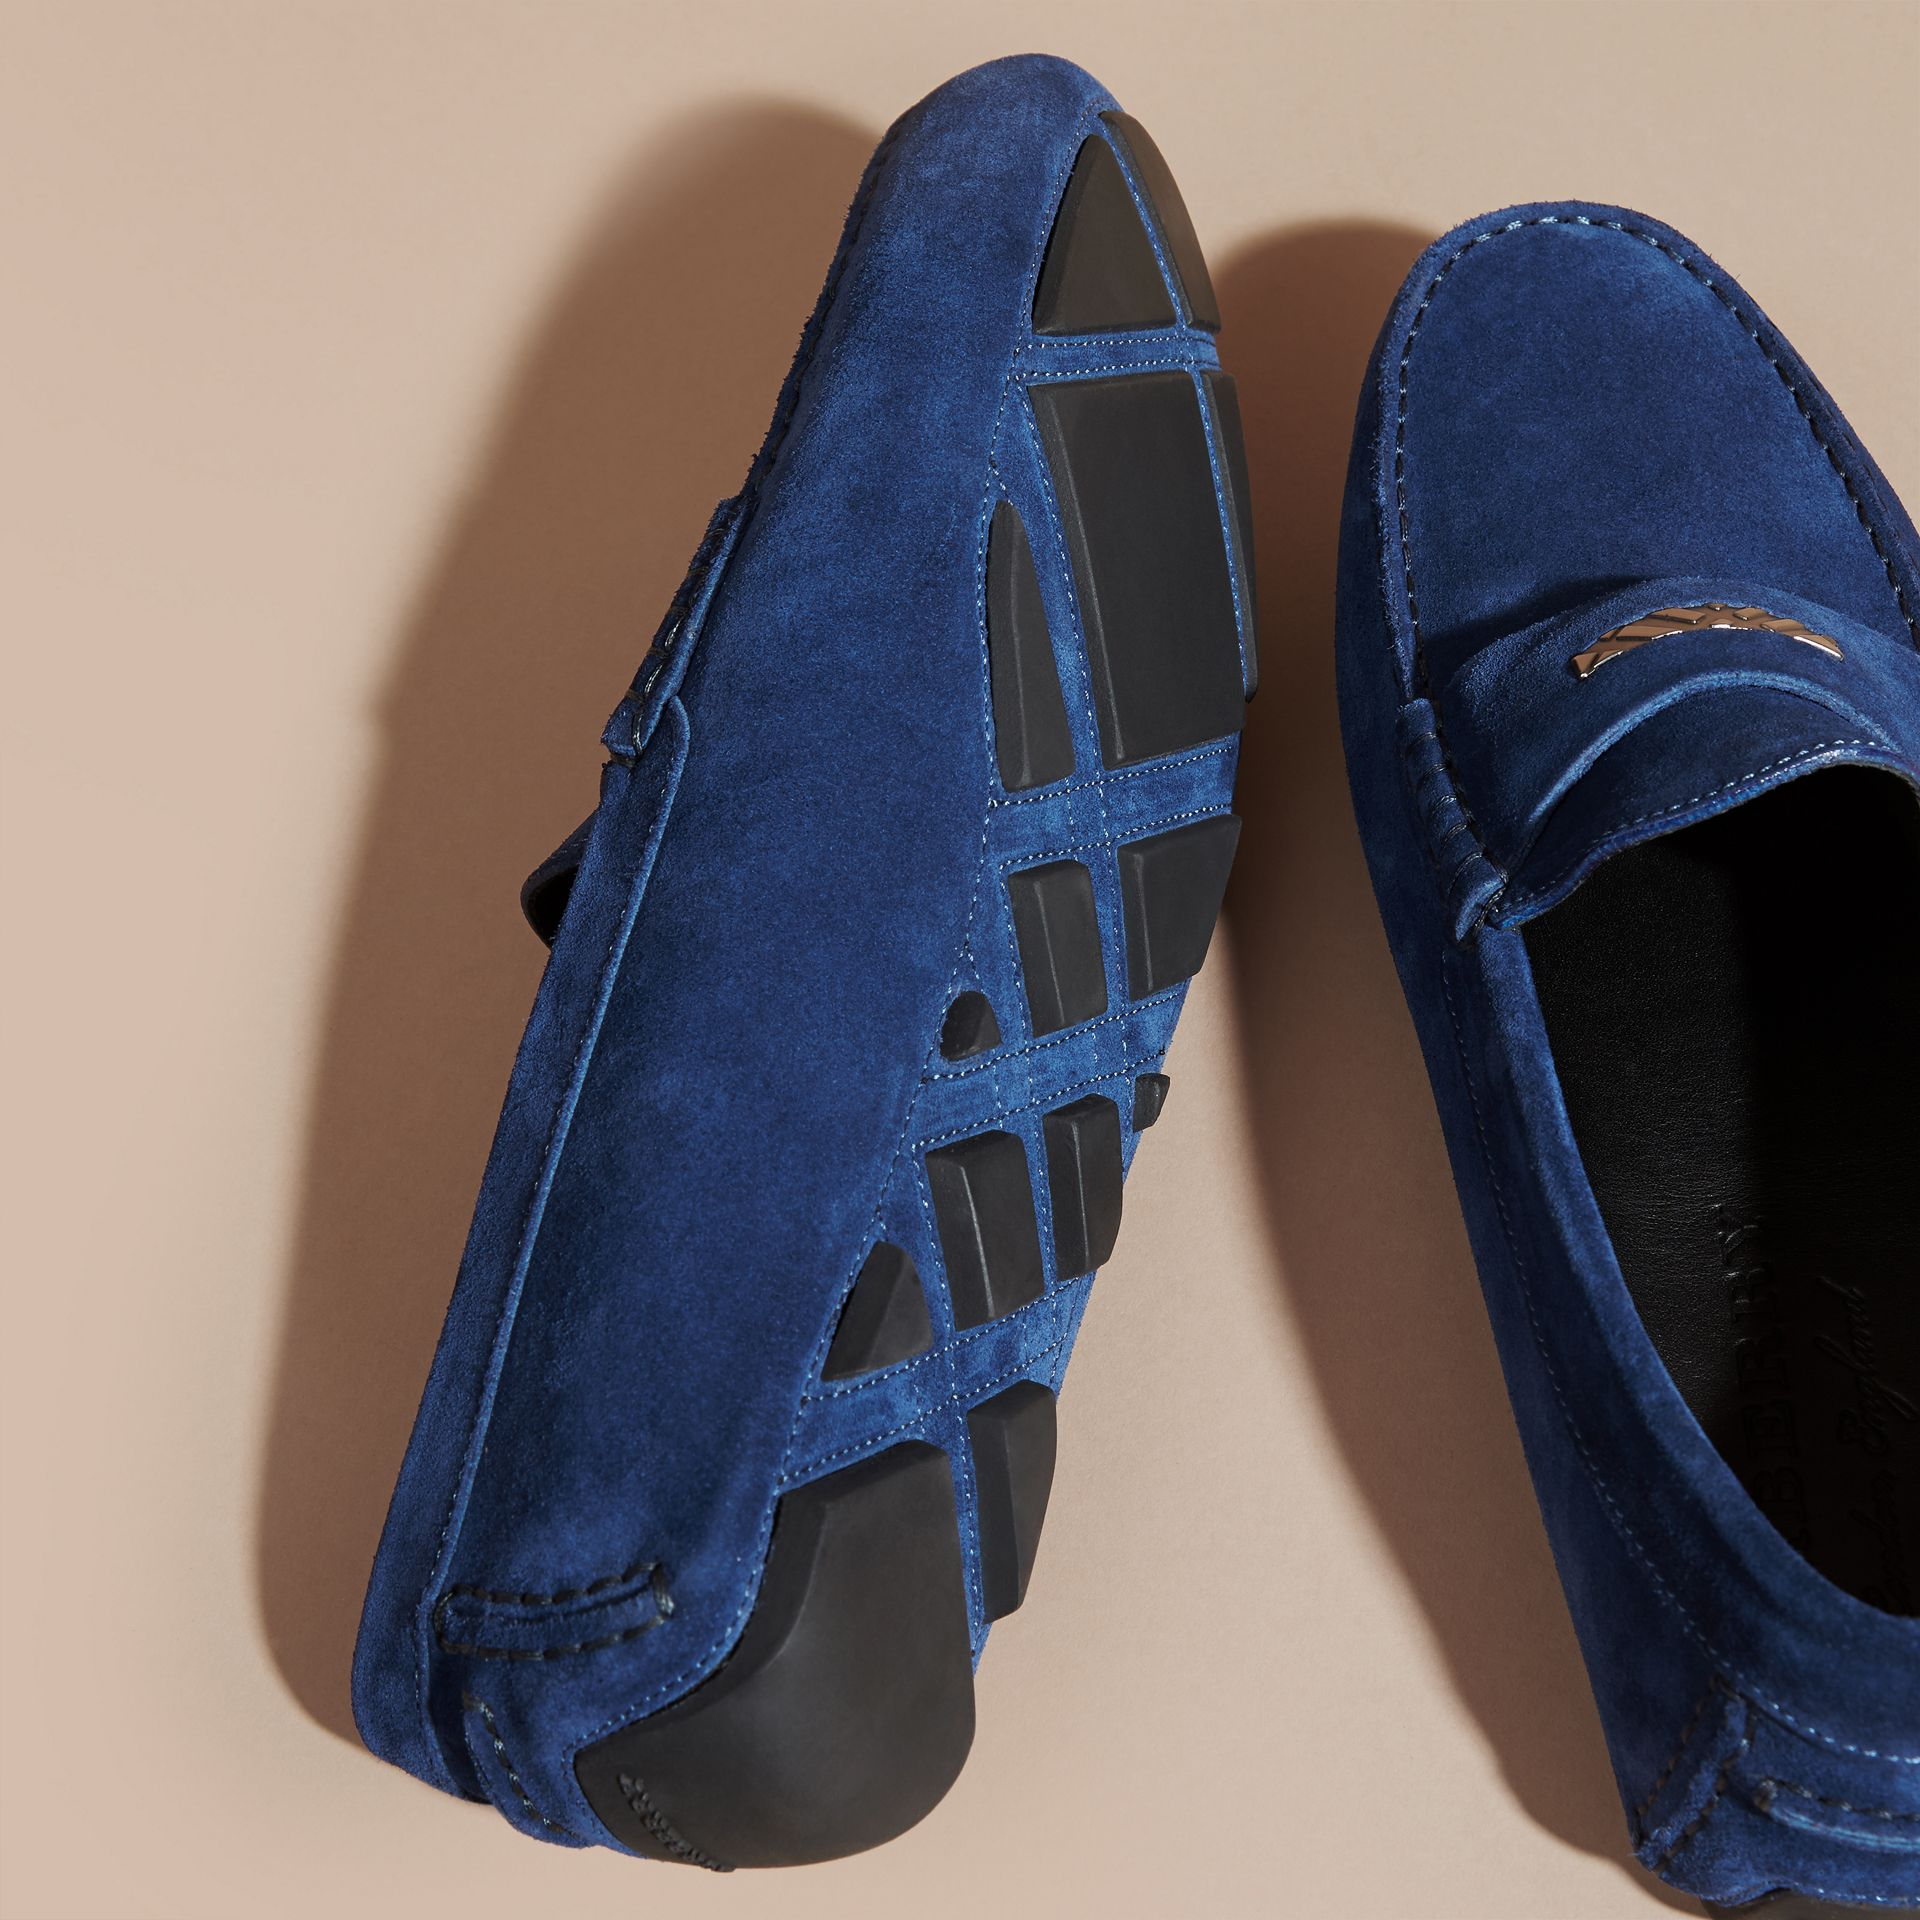 Dragonfly blue Suede Loafers with Engraved Check Detail Dragonfly Blue - gallery image 5